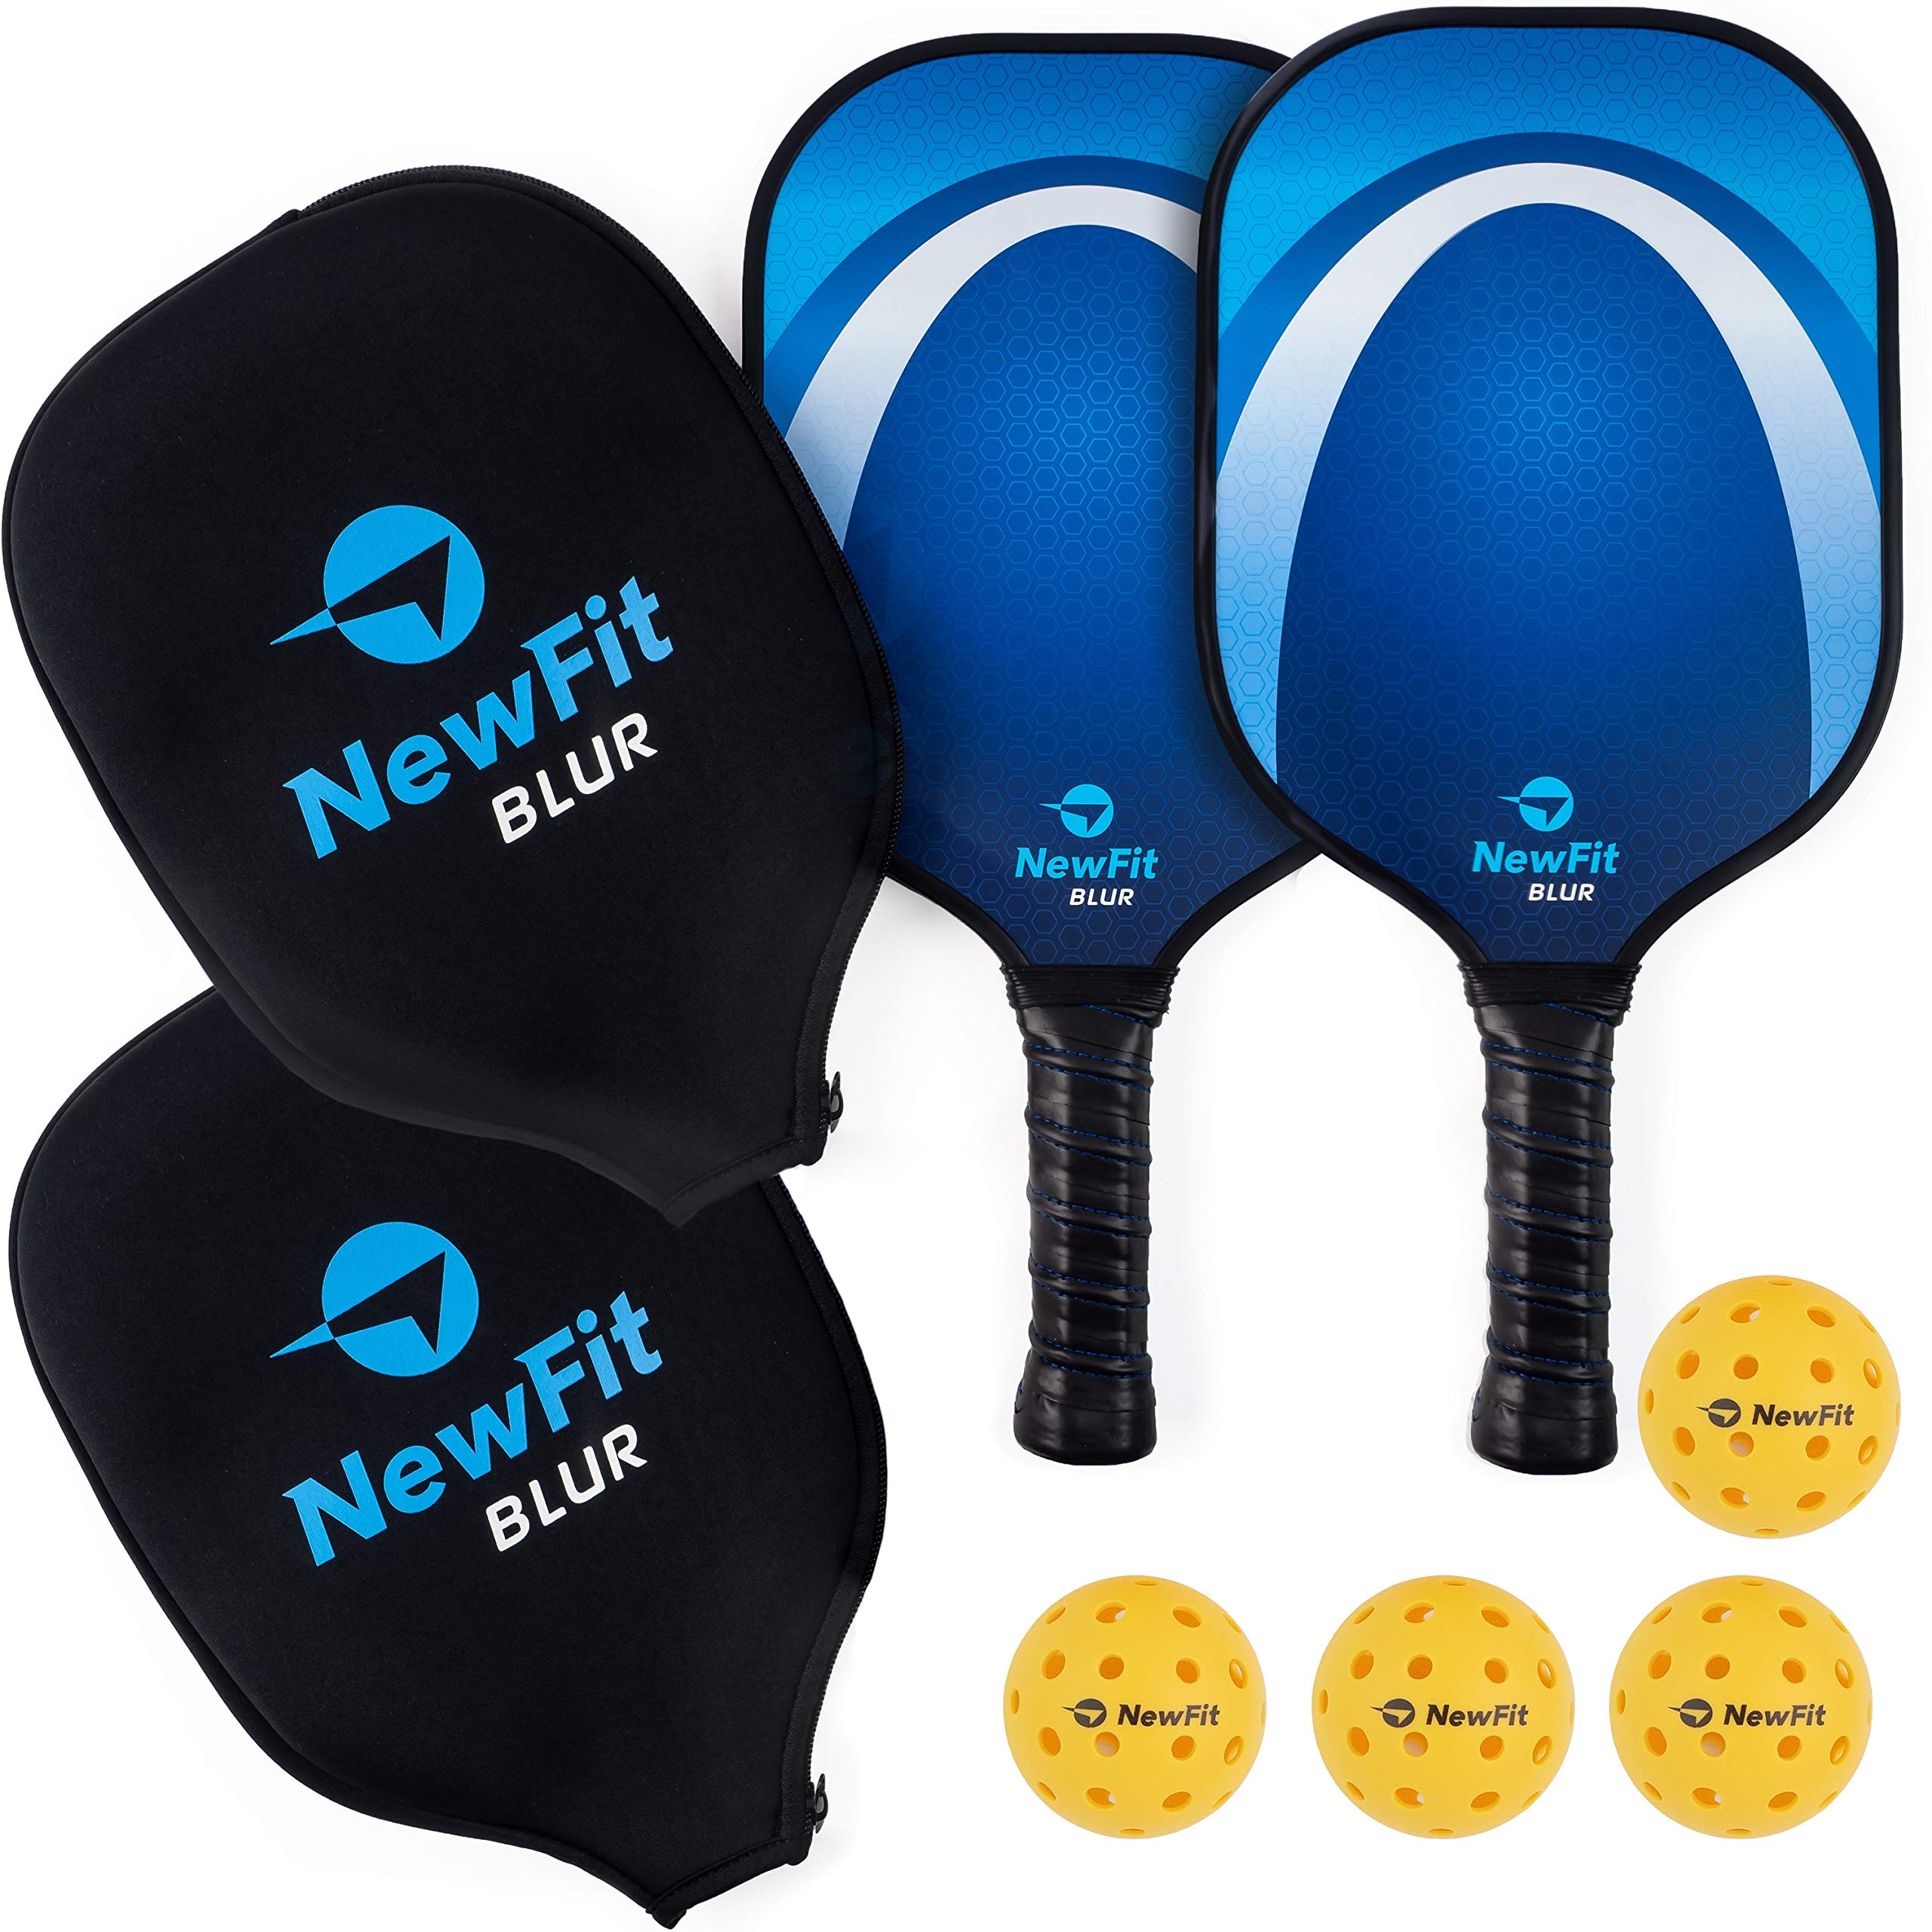 NewFit Blur Pickleball Paddle - USAPA Approved - Graphite Face & Polymer Core for a Quiet and Light Racket - 2 Paddles Set w/ 4 Balls (Blue Set) by NewFit Sports